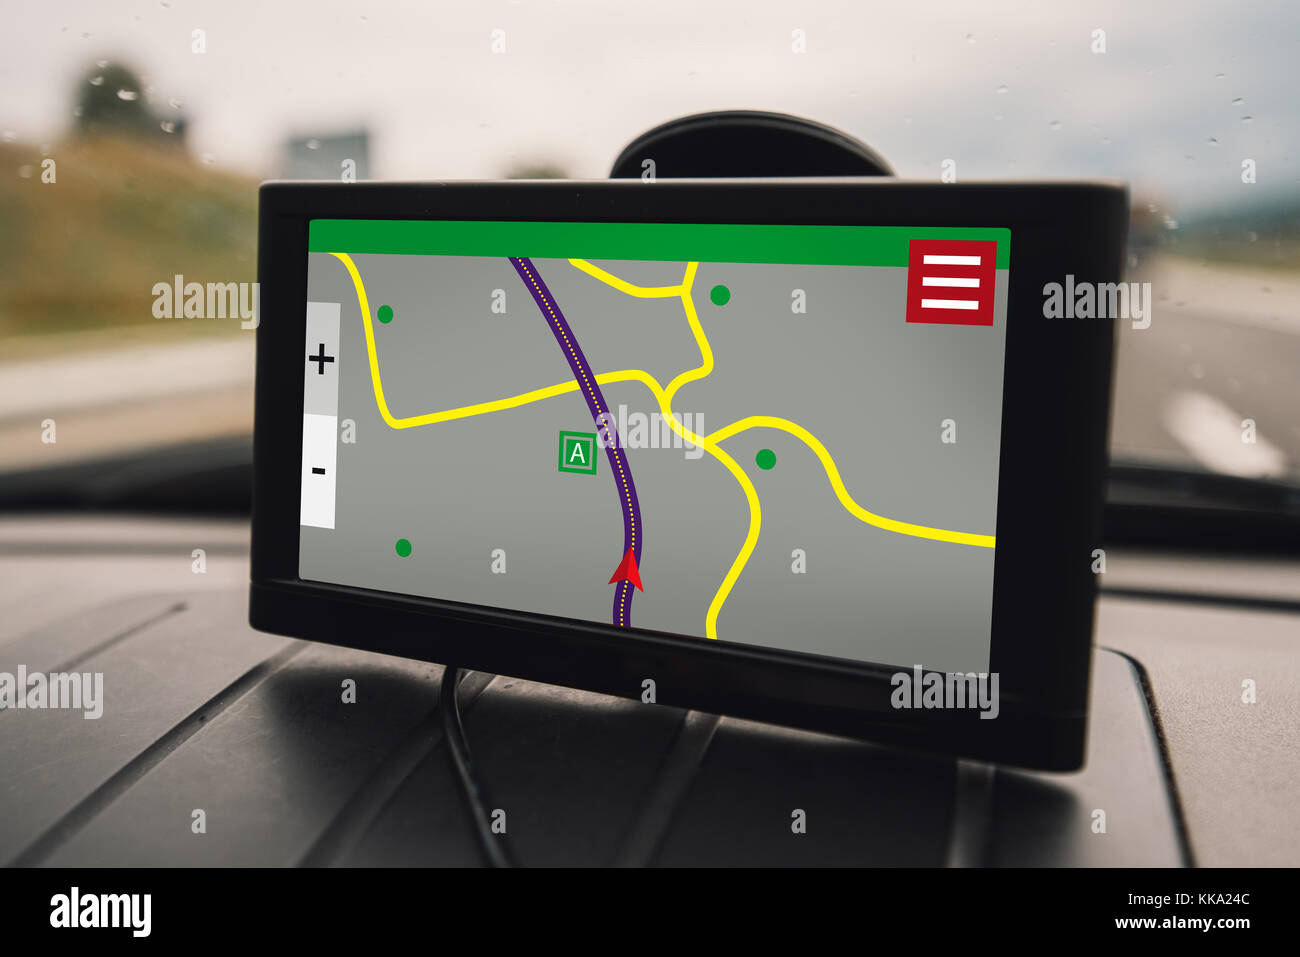 GPS (Global Positioning System) car navigation device, help and assistance with direction on road - Stock Image